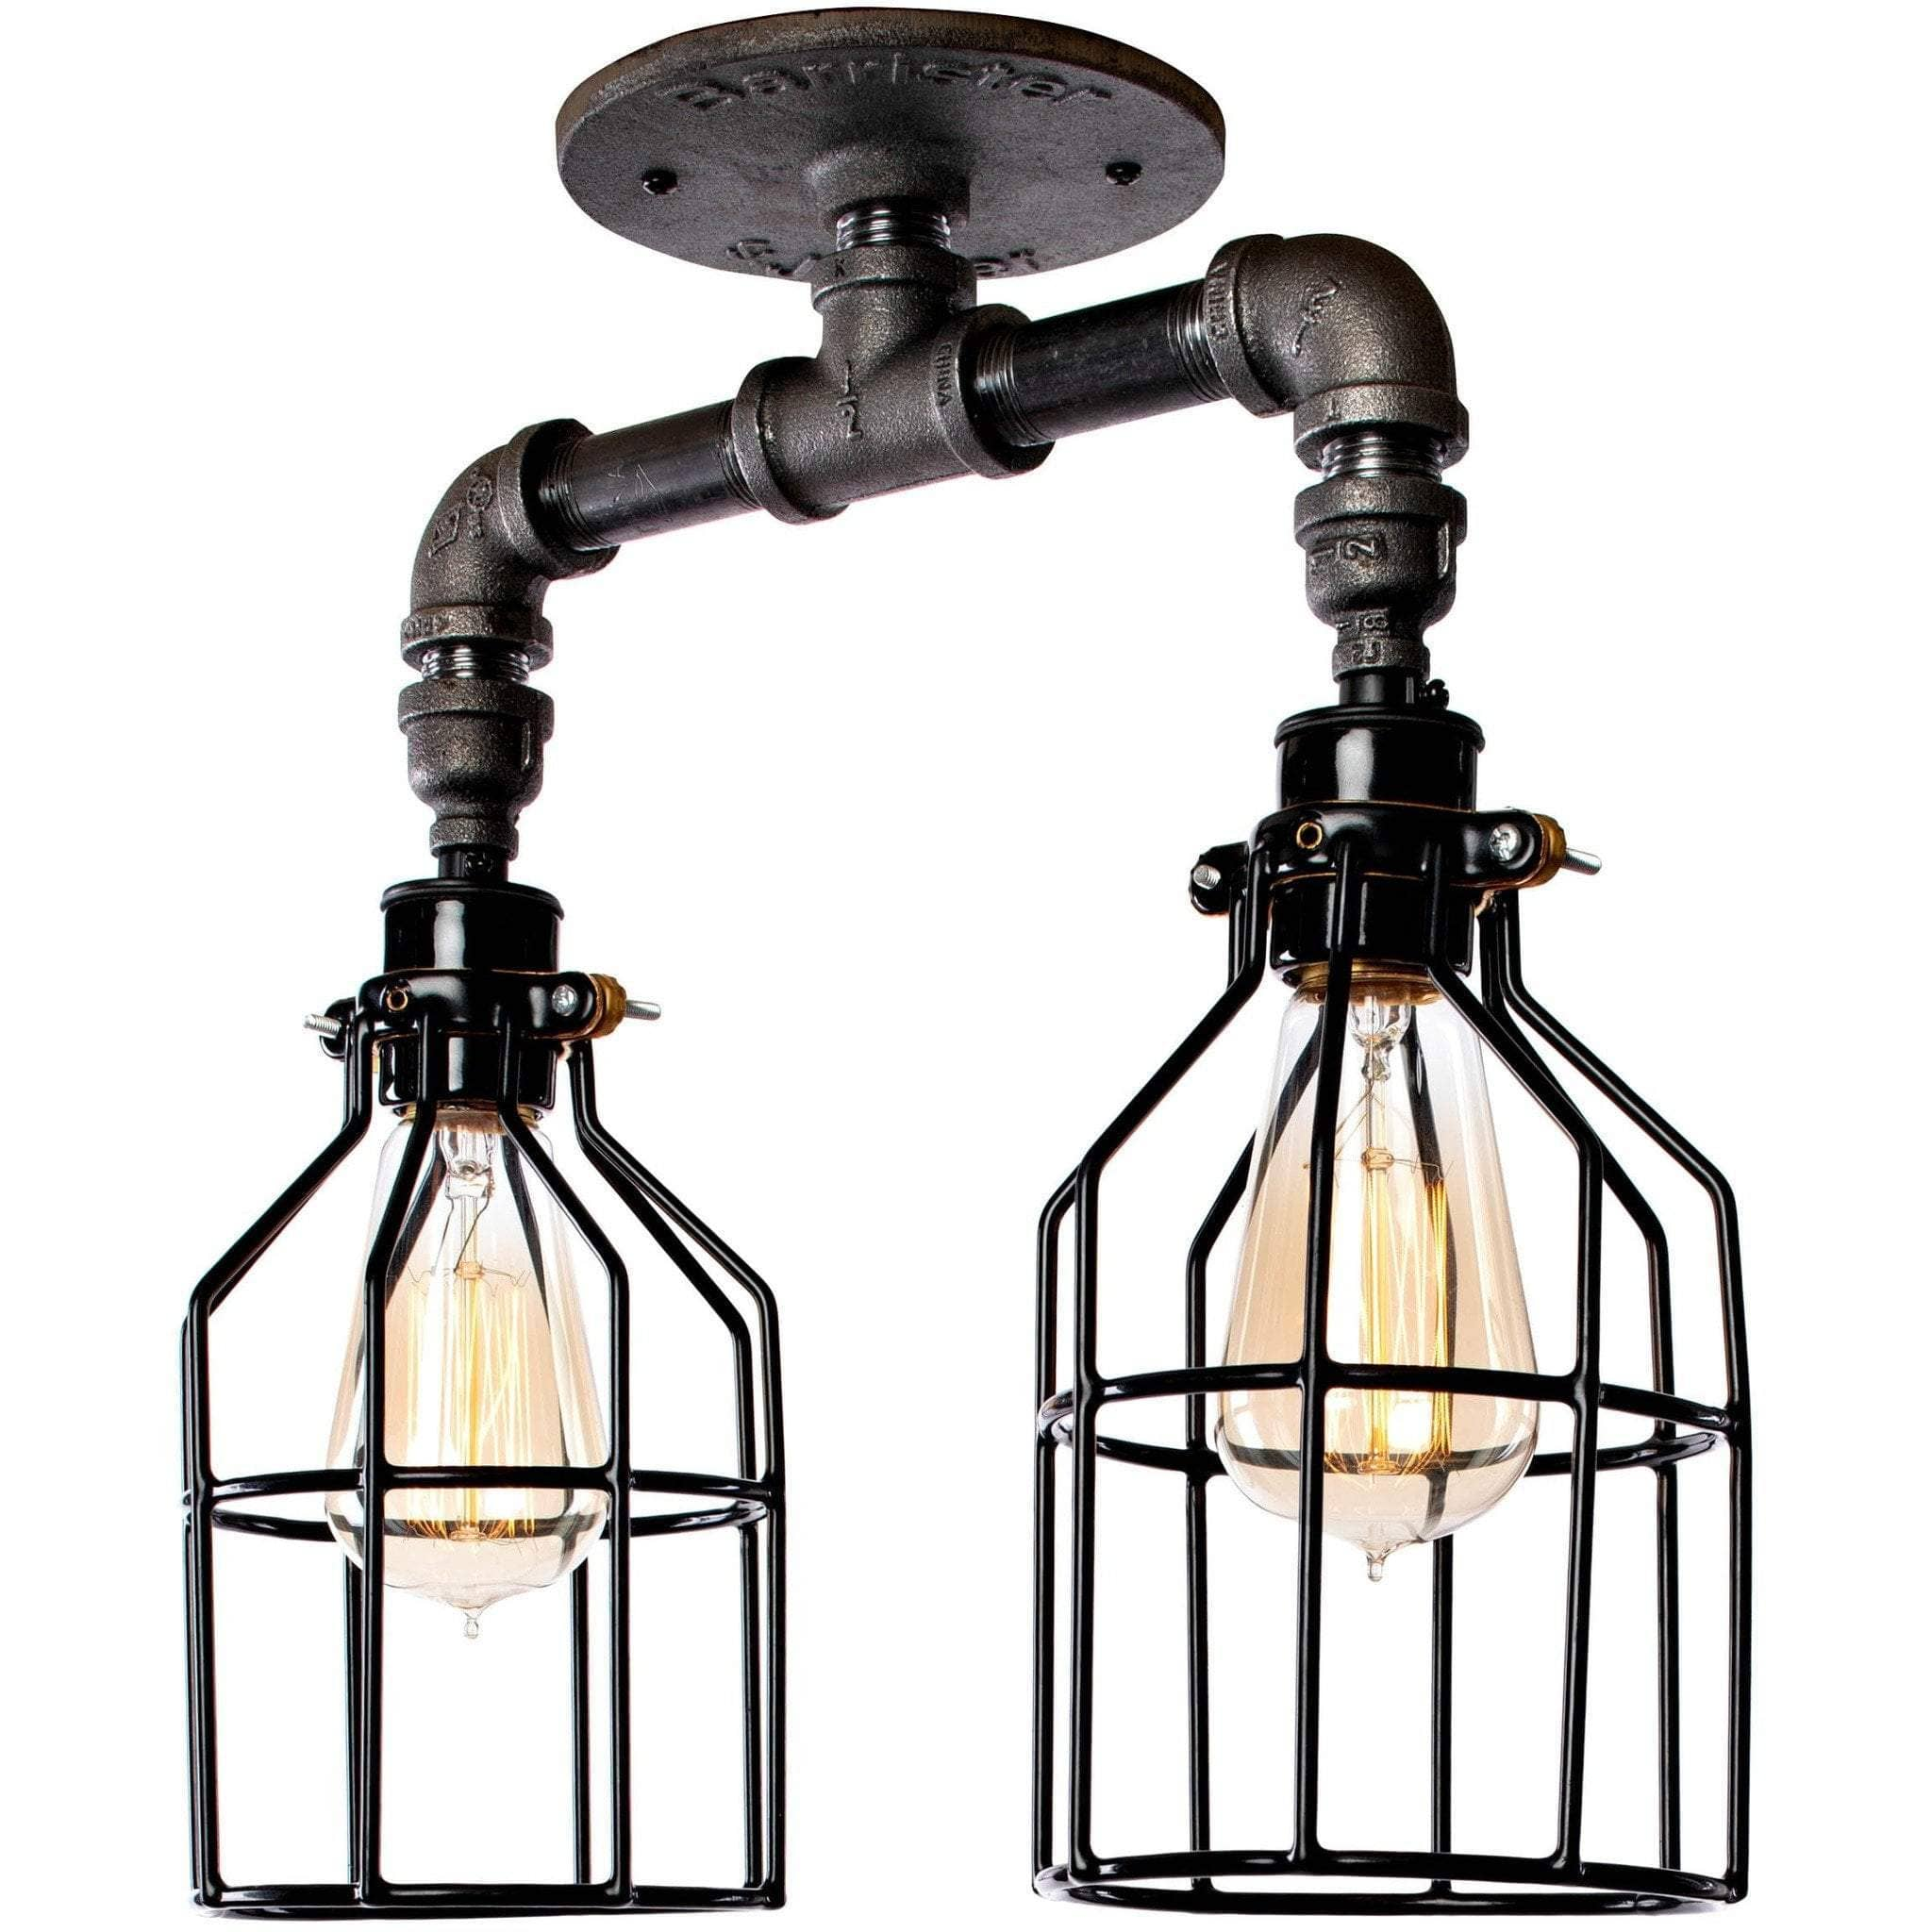 Lighting Industrial Double Pipe Light